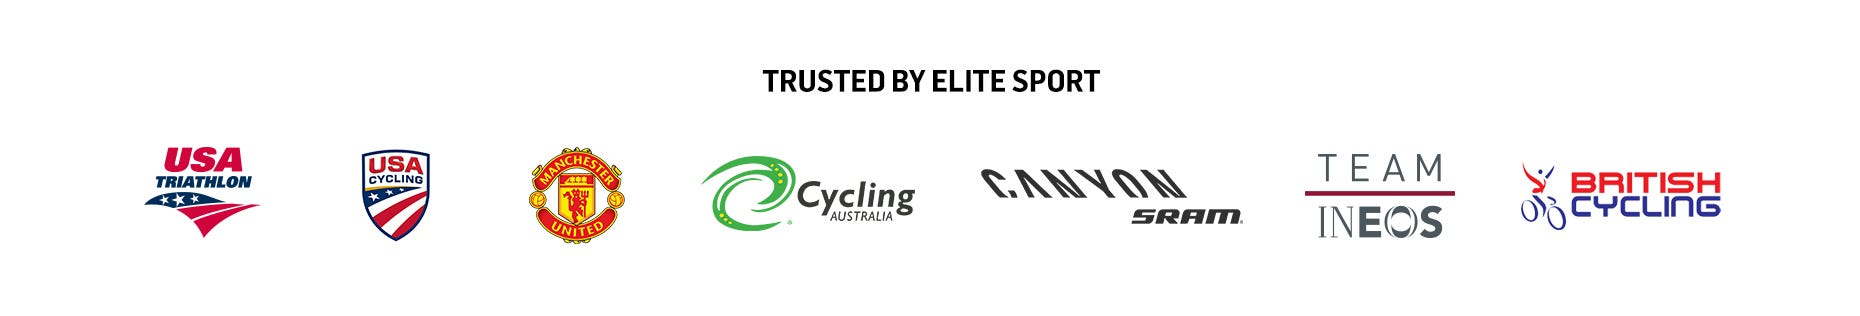 Trusted By Elite Sport